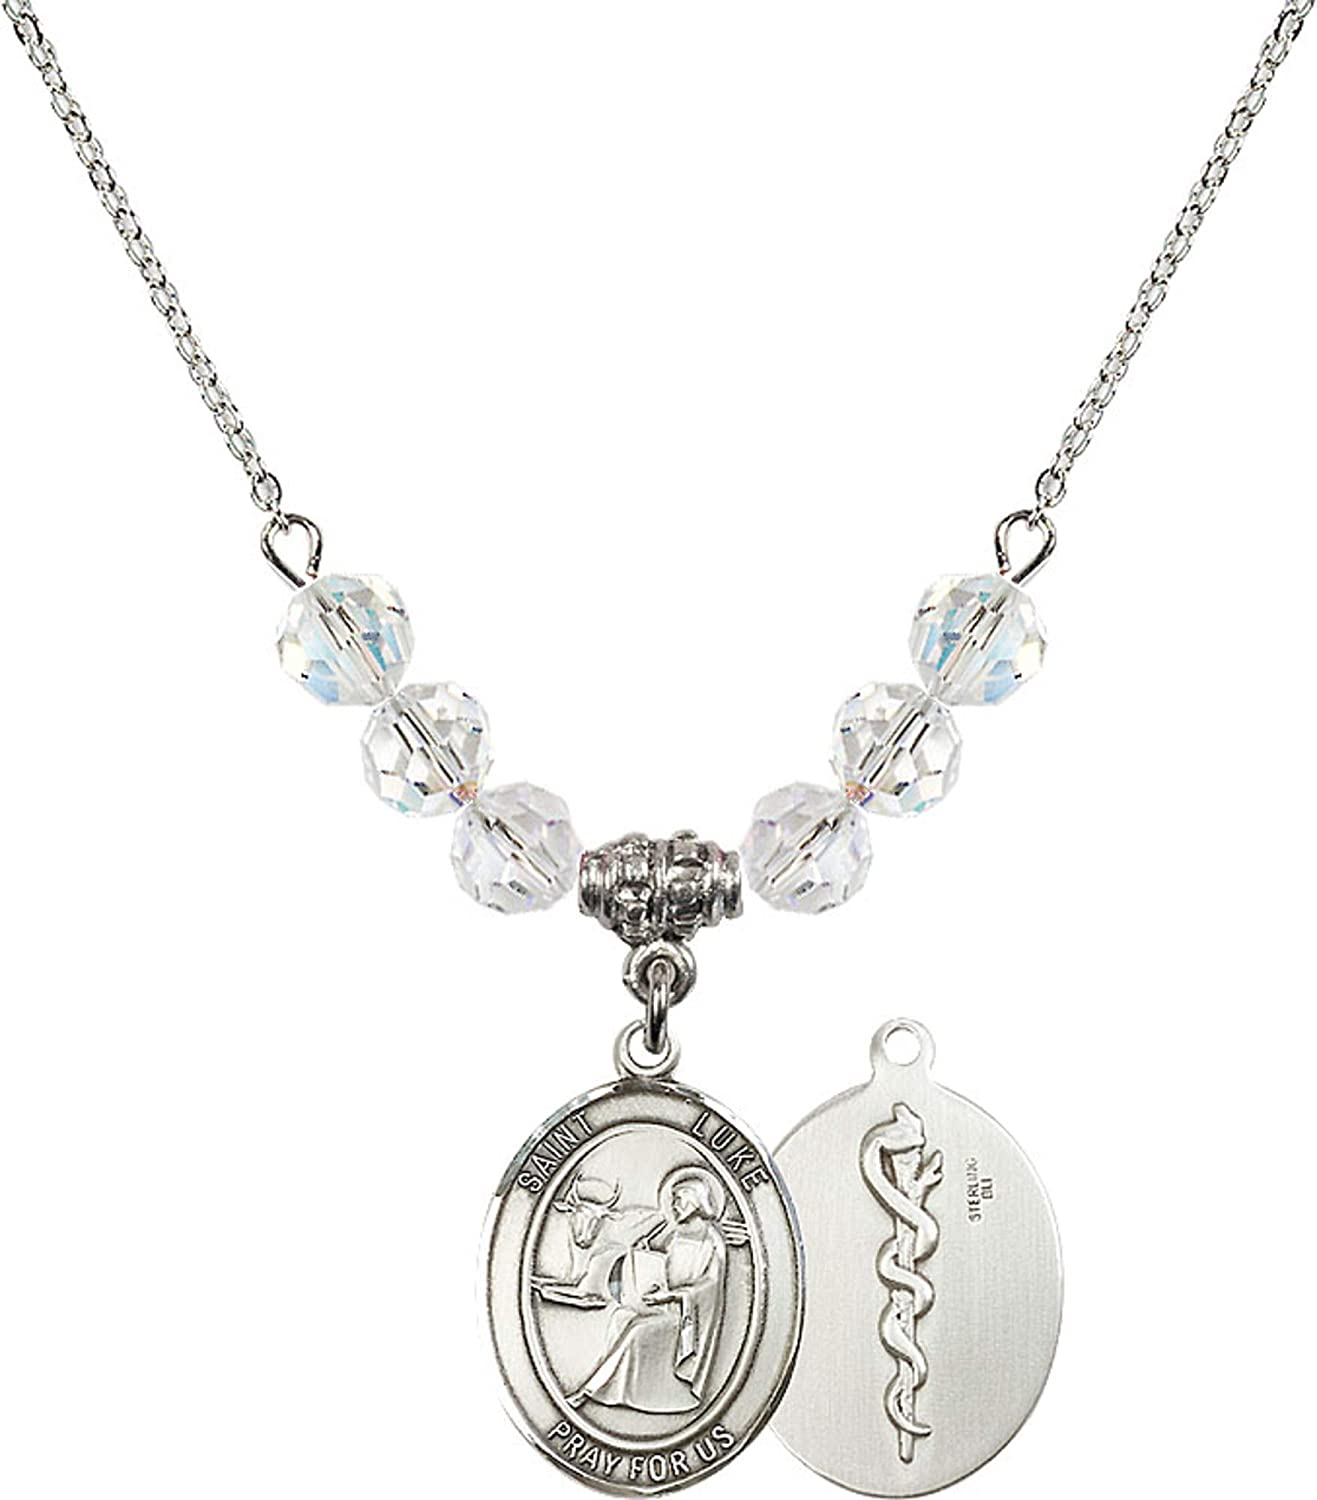 Bonyak Jewelry 18 Inch Rhodium Plated Necklace w// 6mm White April Birth Month Stone Beads and Saint Luke The Apostle//Doctor Charm